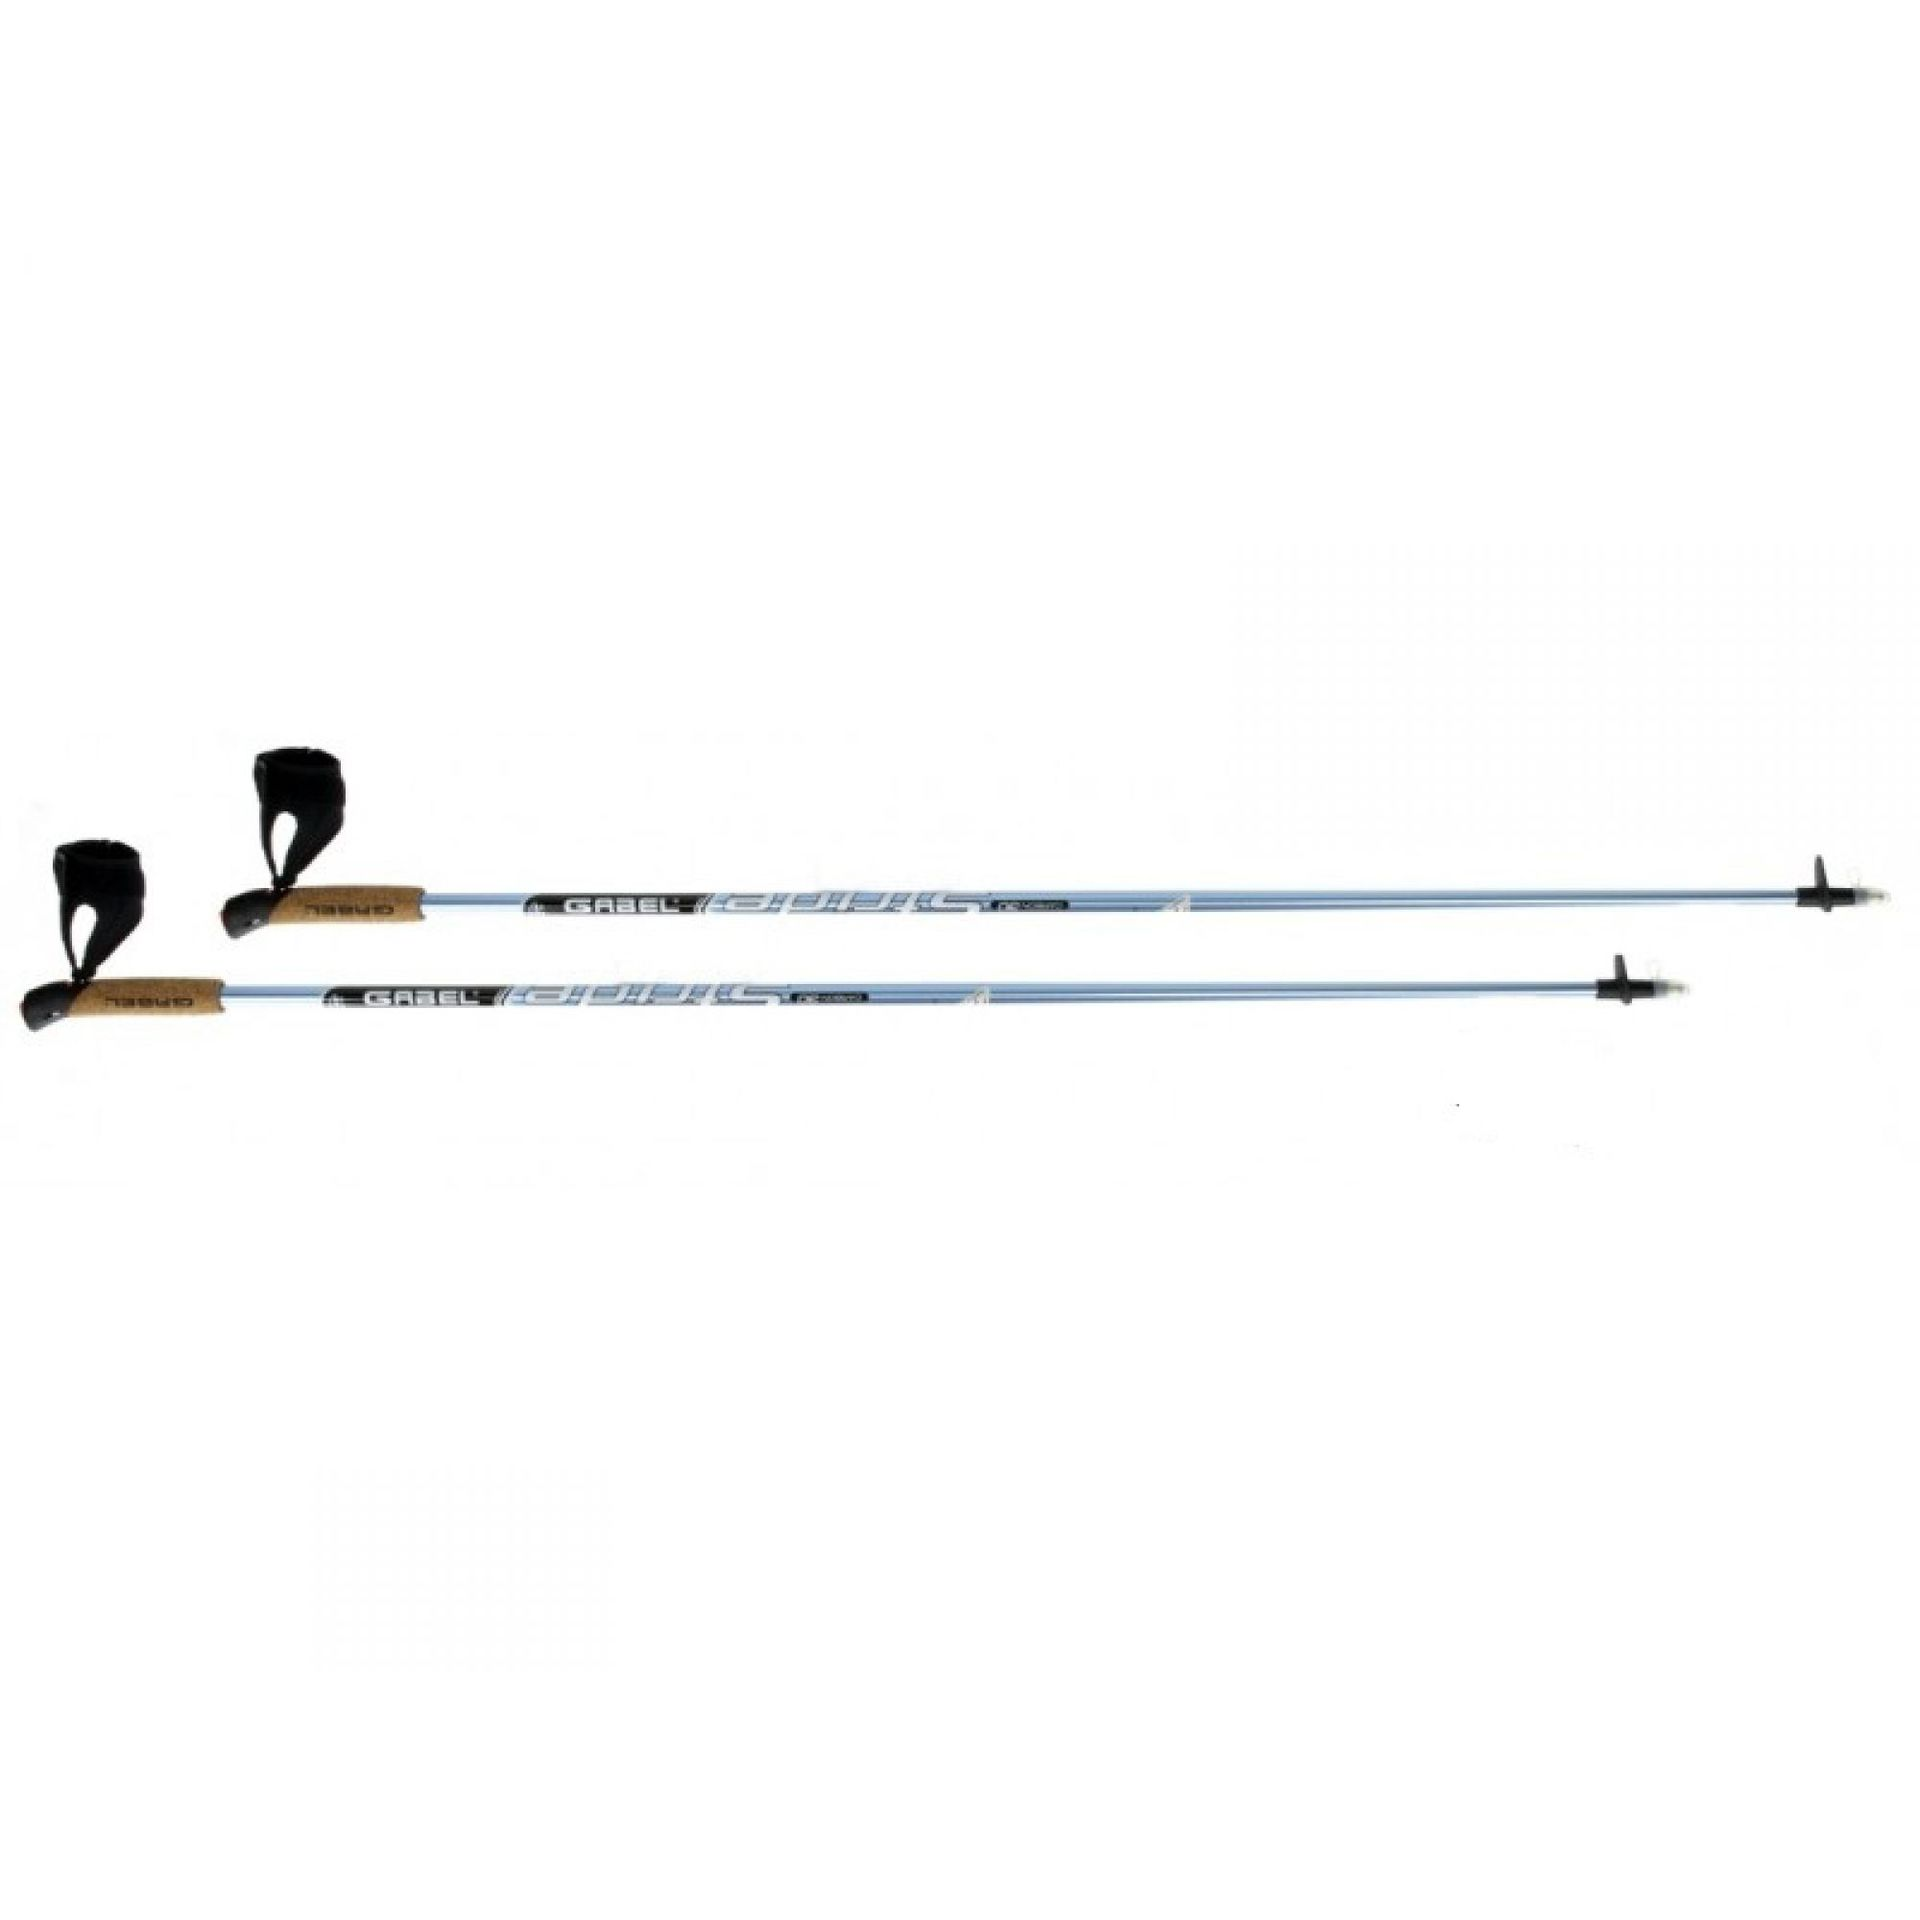 Kije nordic walking Gabel Stride X 1.3